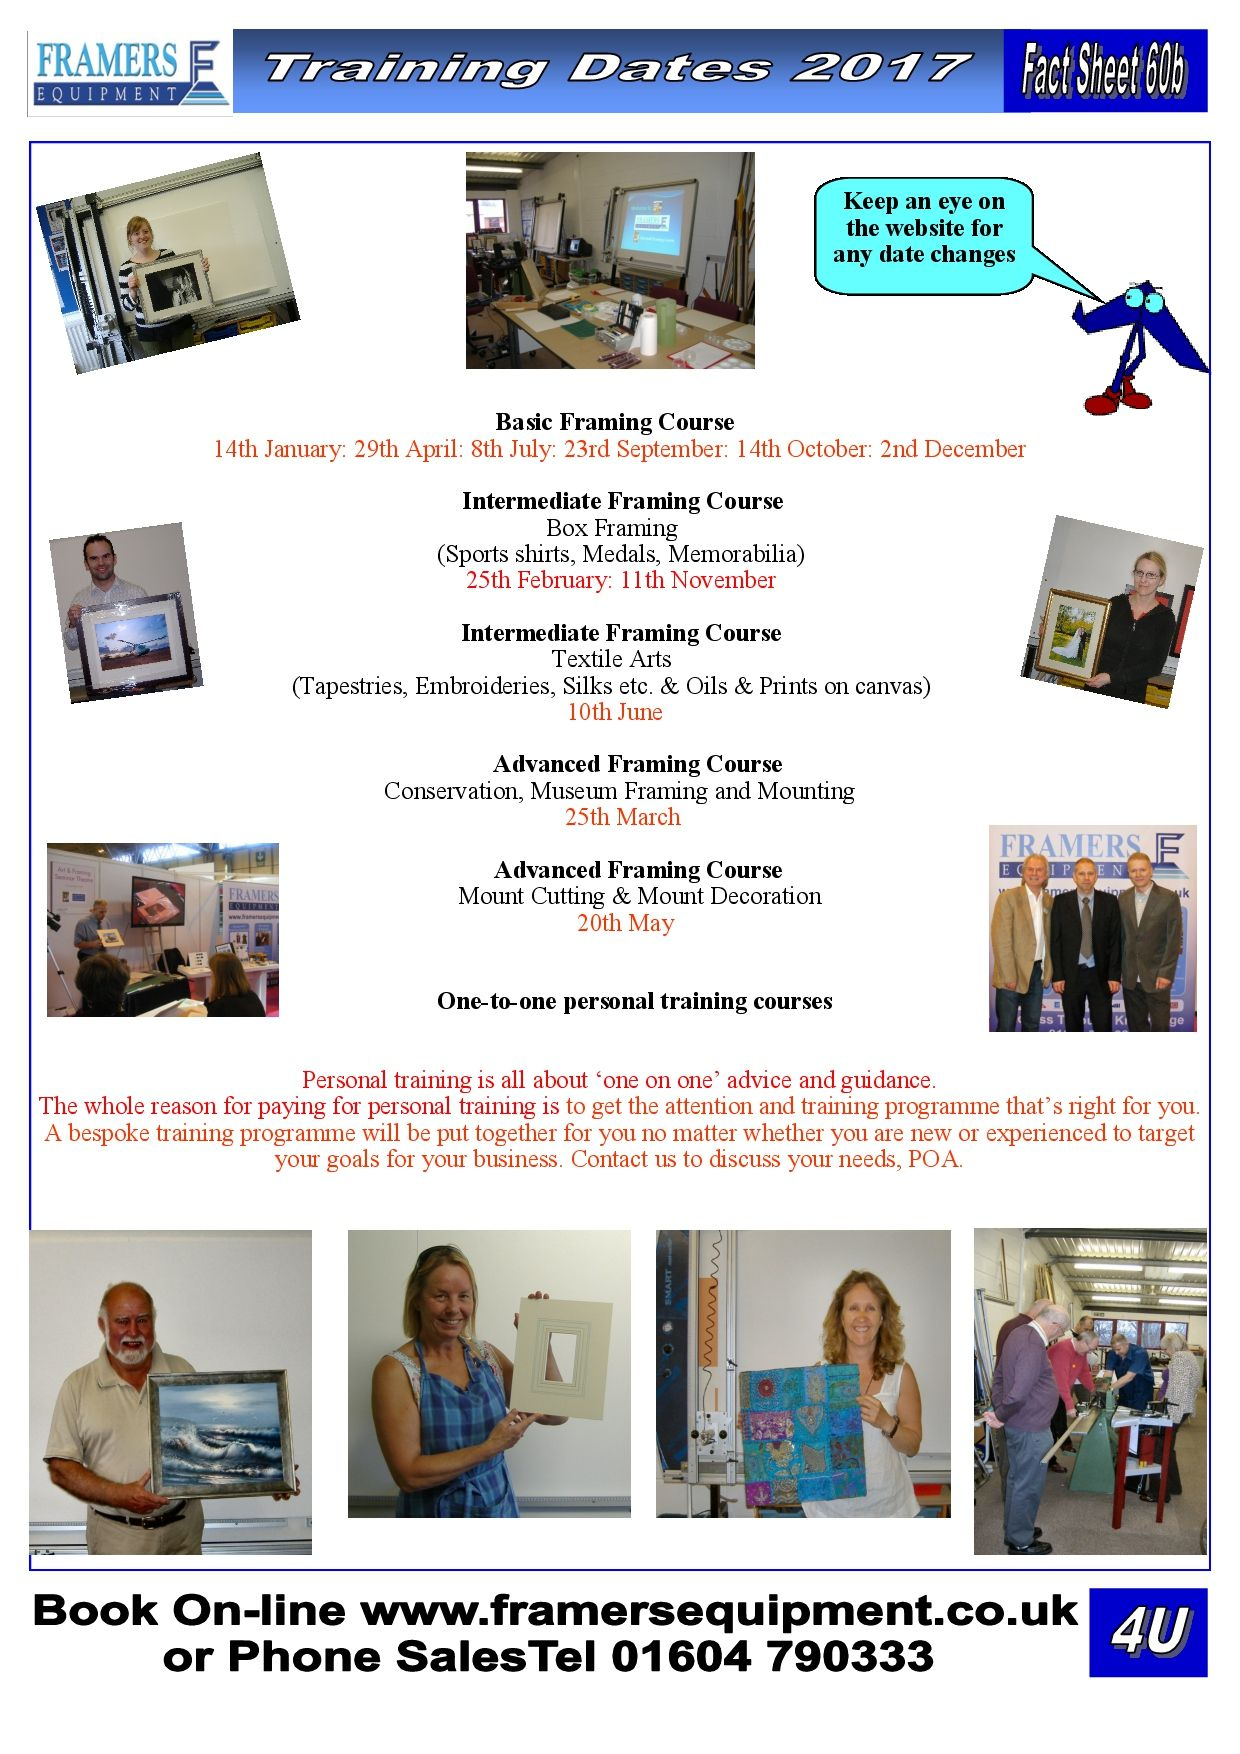 Pin by Jan Stanlick on Picture Framing Training Courses | Pinterest